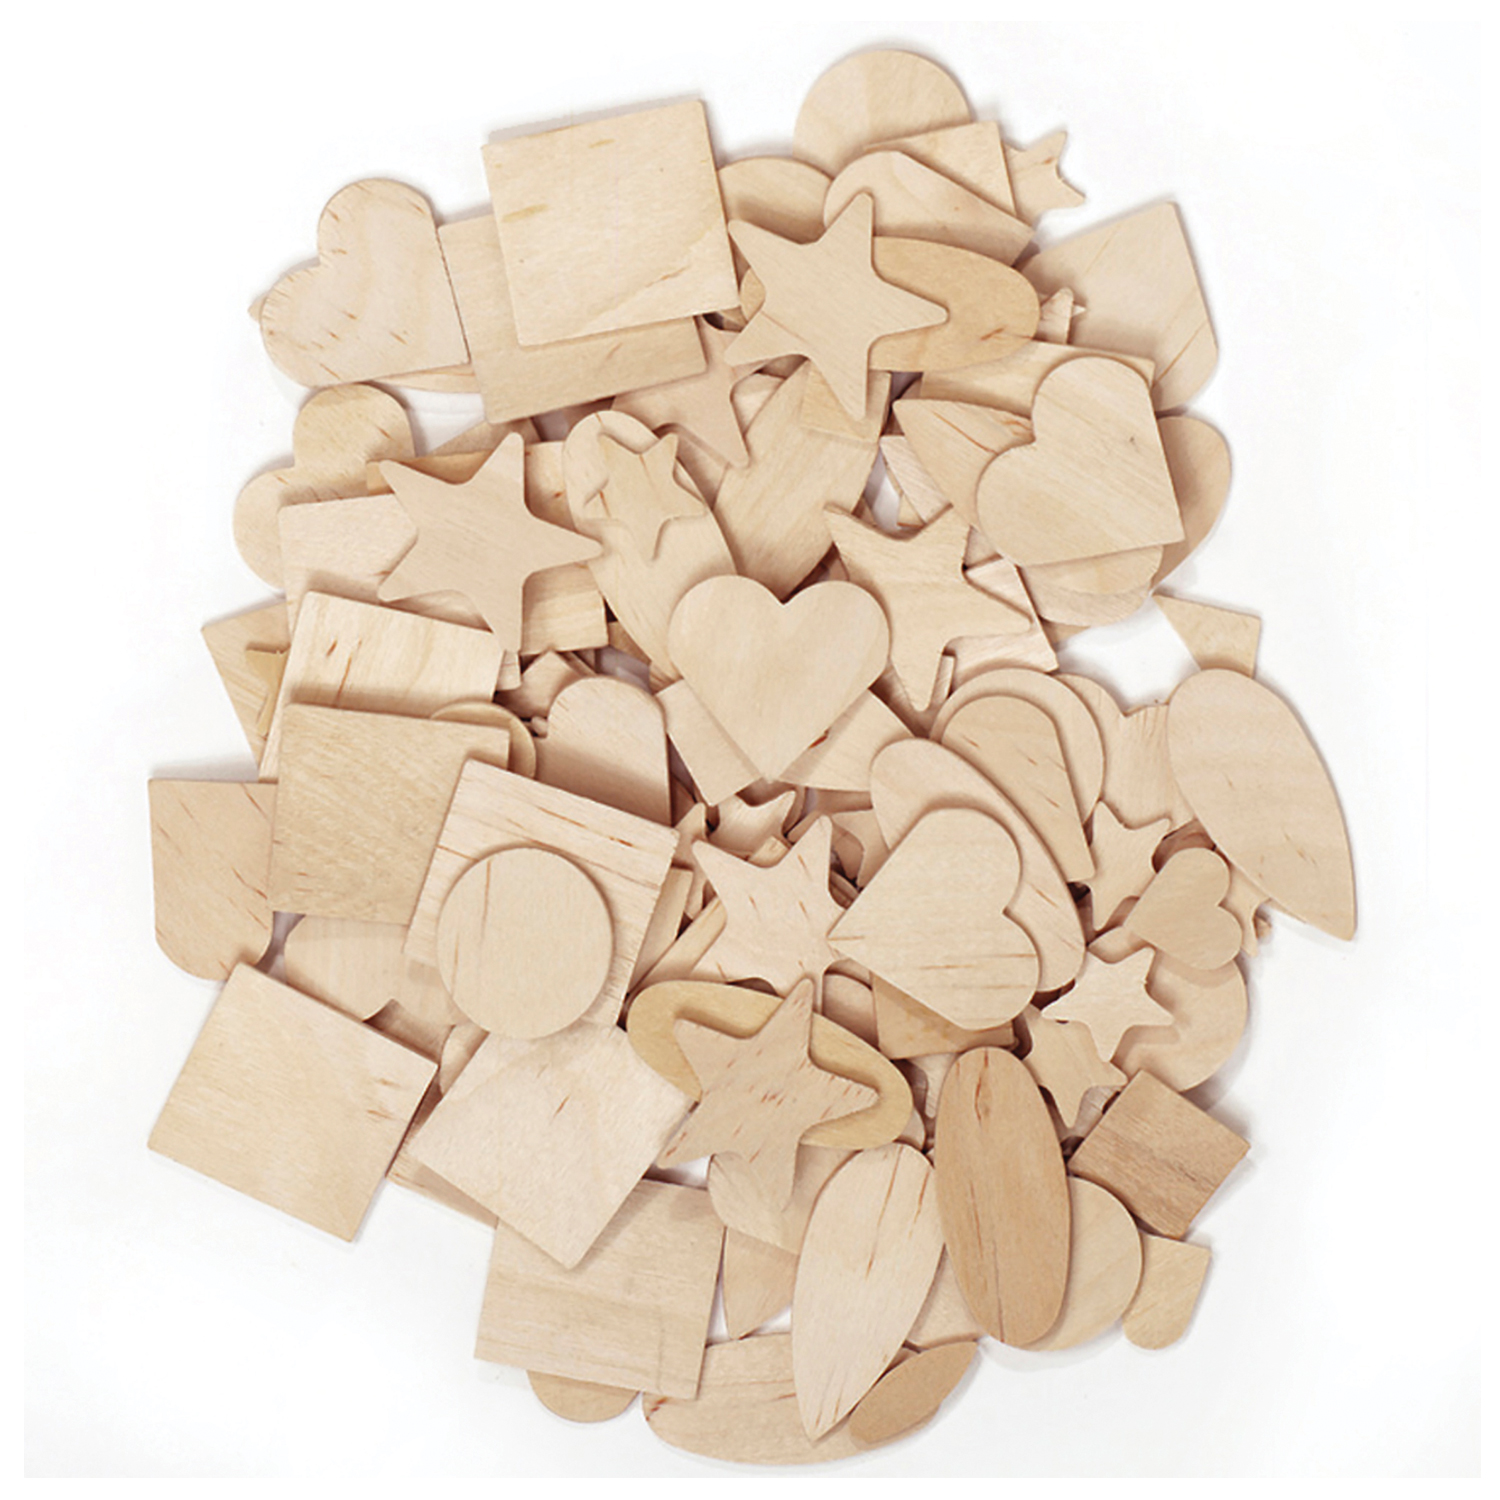 Creativity Street® Natural Wood Shapes Assortment